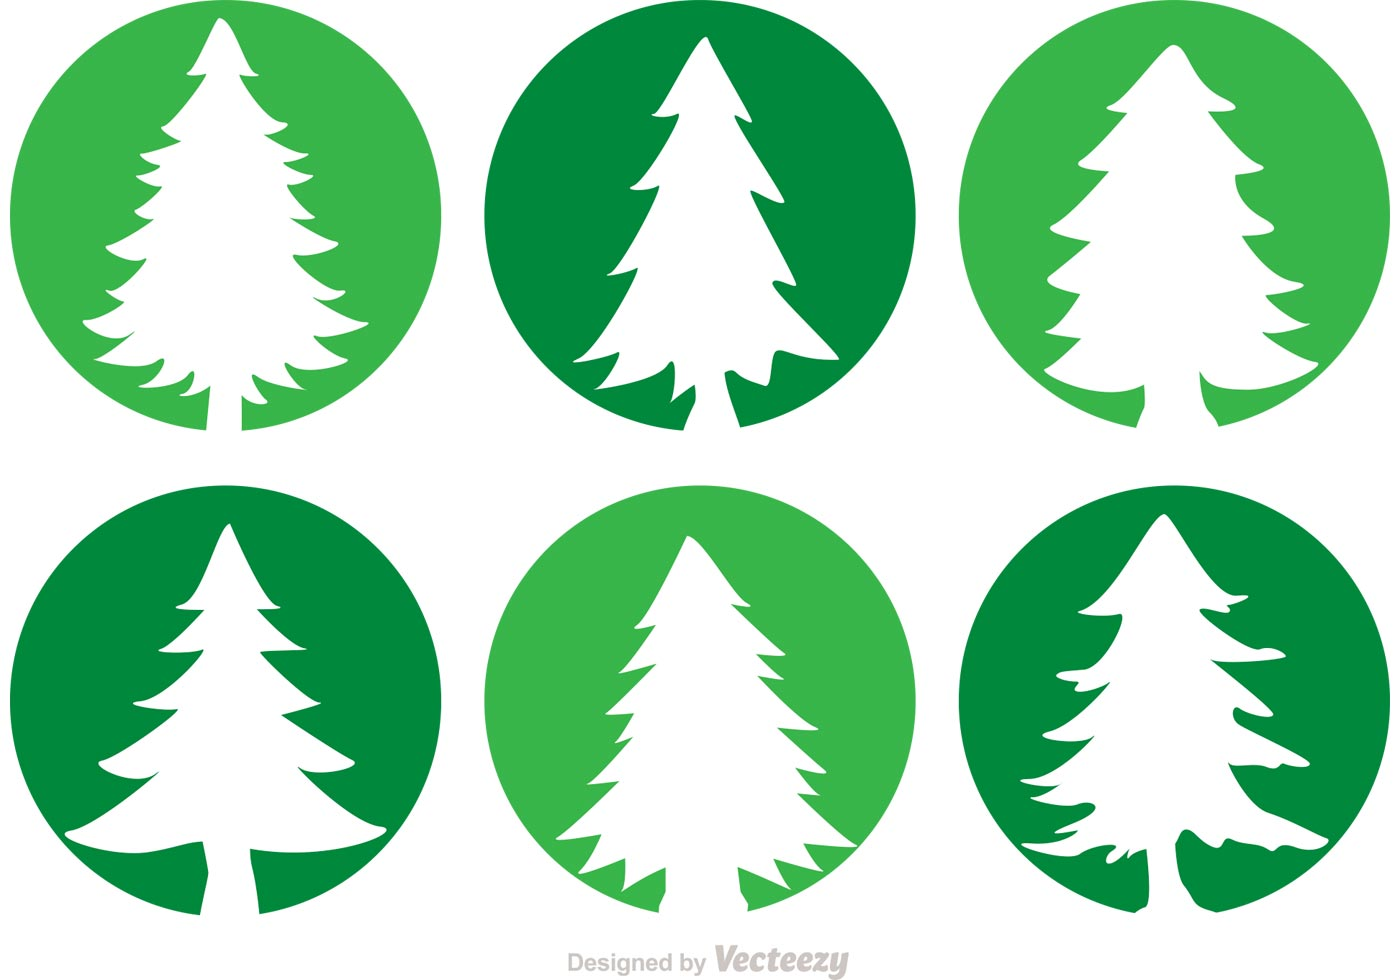 Cedar Trees Circle Vector Icons - Download Free Vector Art, Stock ...